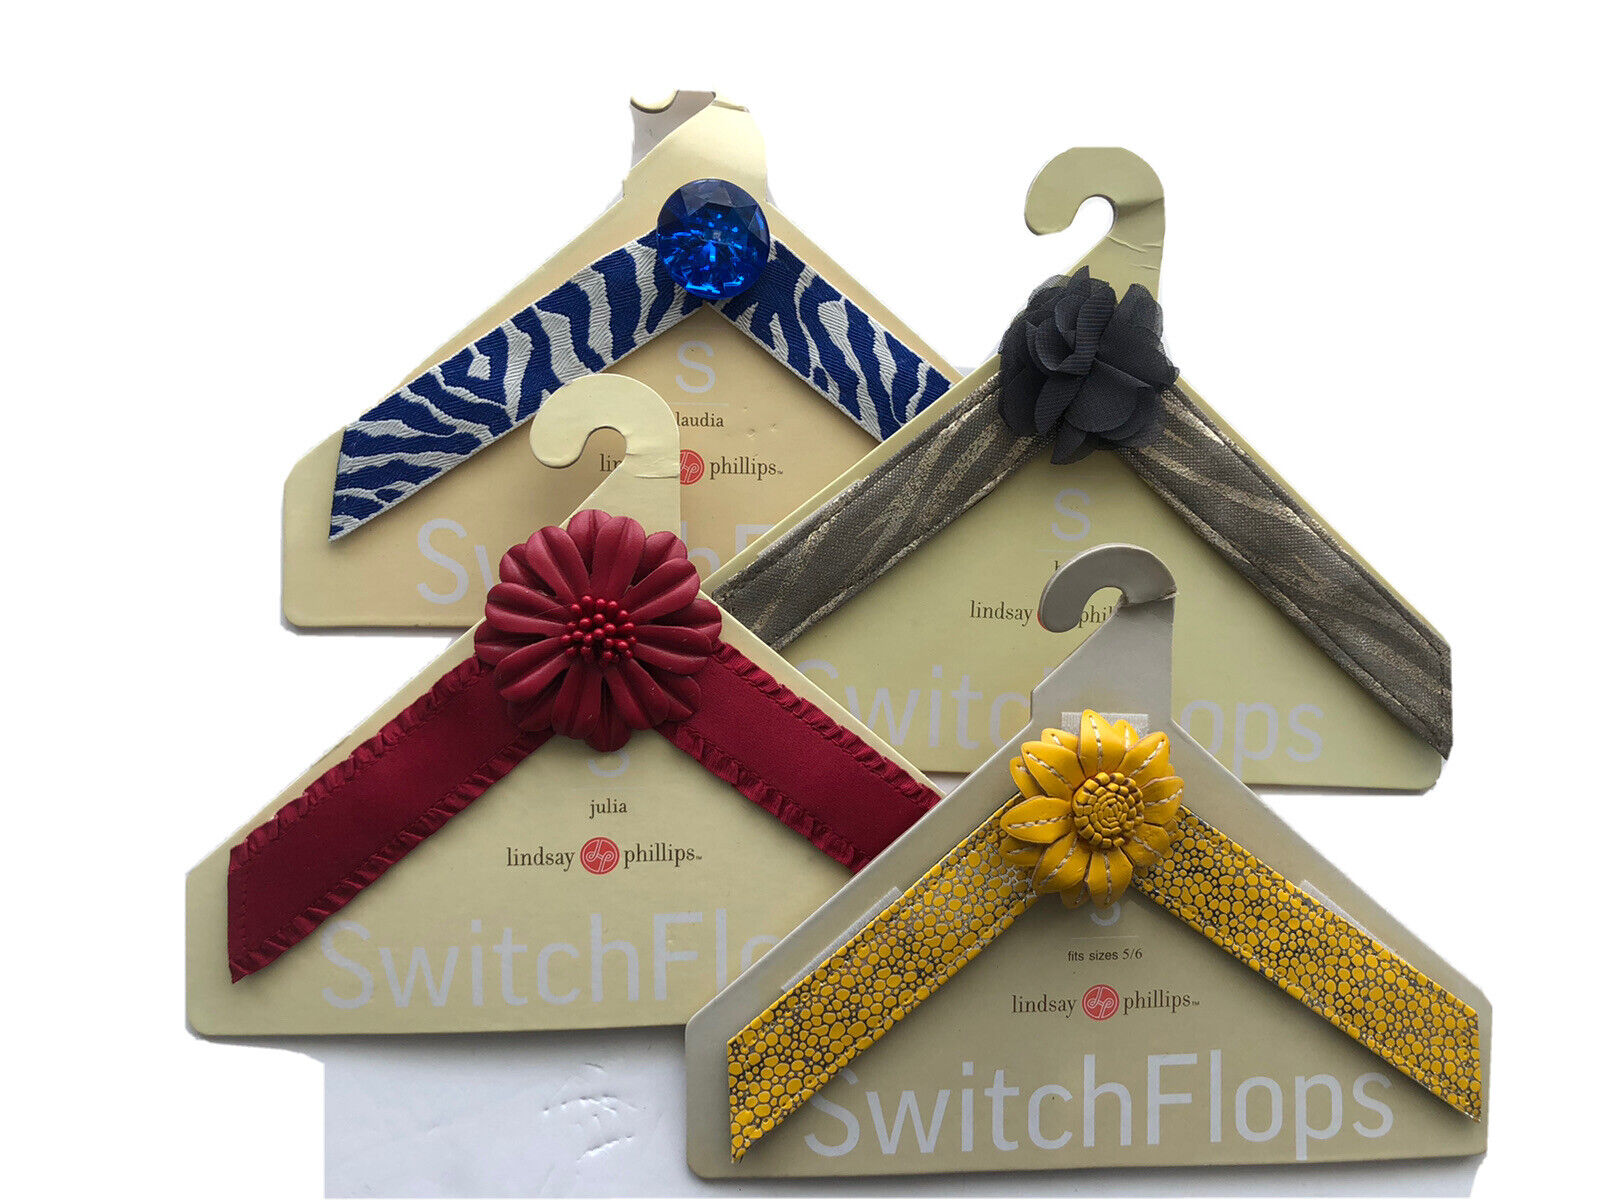 Lindsay Phillips Switchflops Size Small Straps New Set of 4 Abbey Julia Claudia